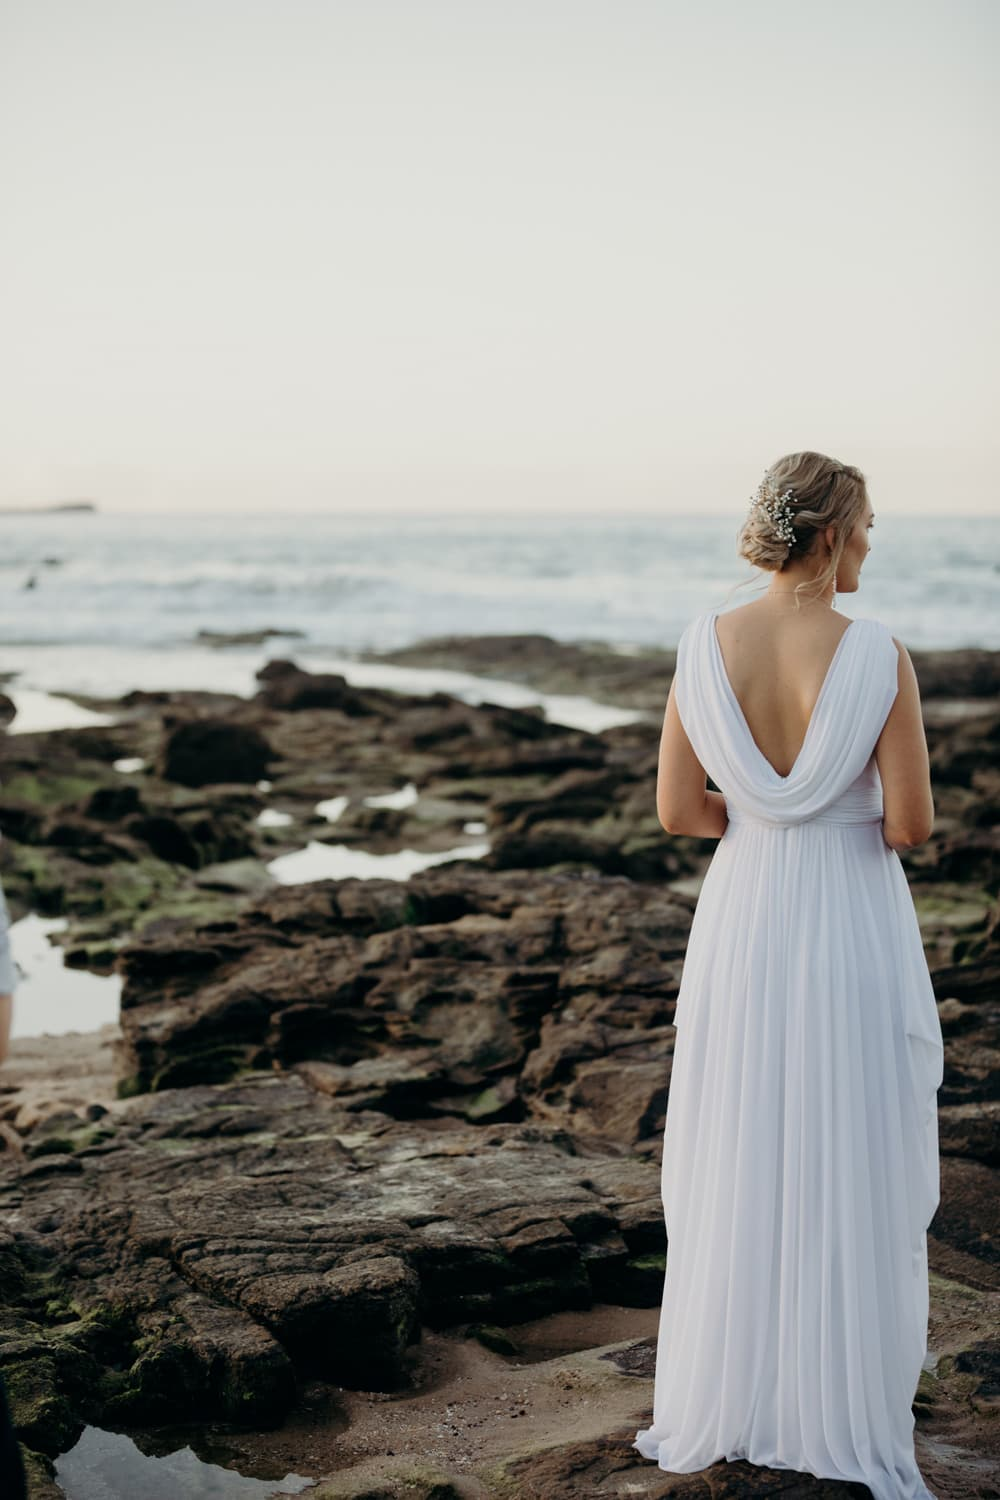 Candid photo of Bride on the Beach, Sunshine Coast by Cloud Catcher Studio